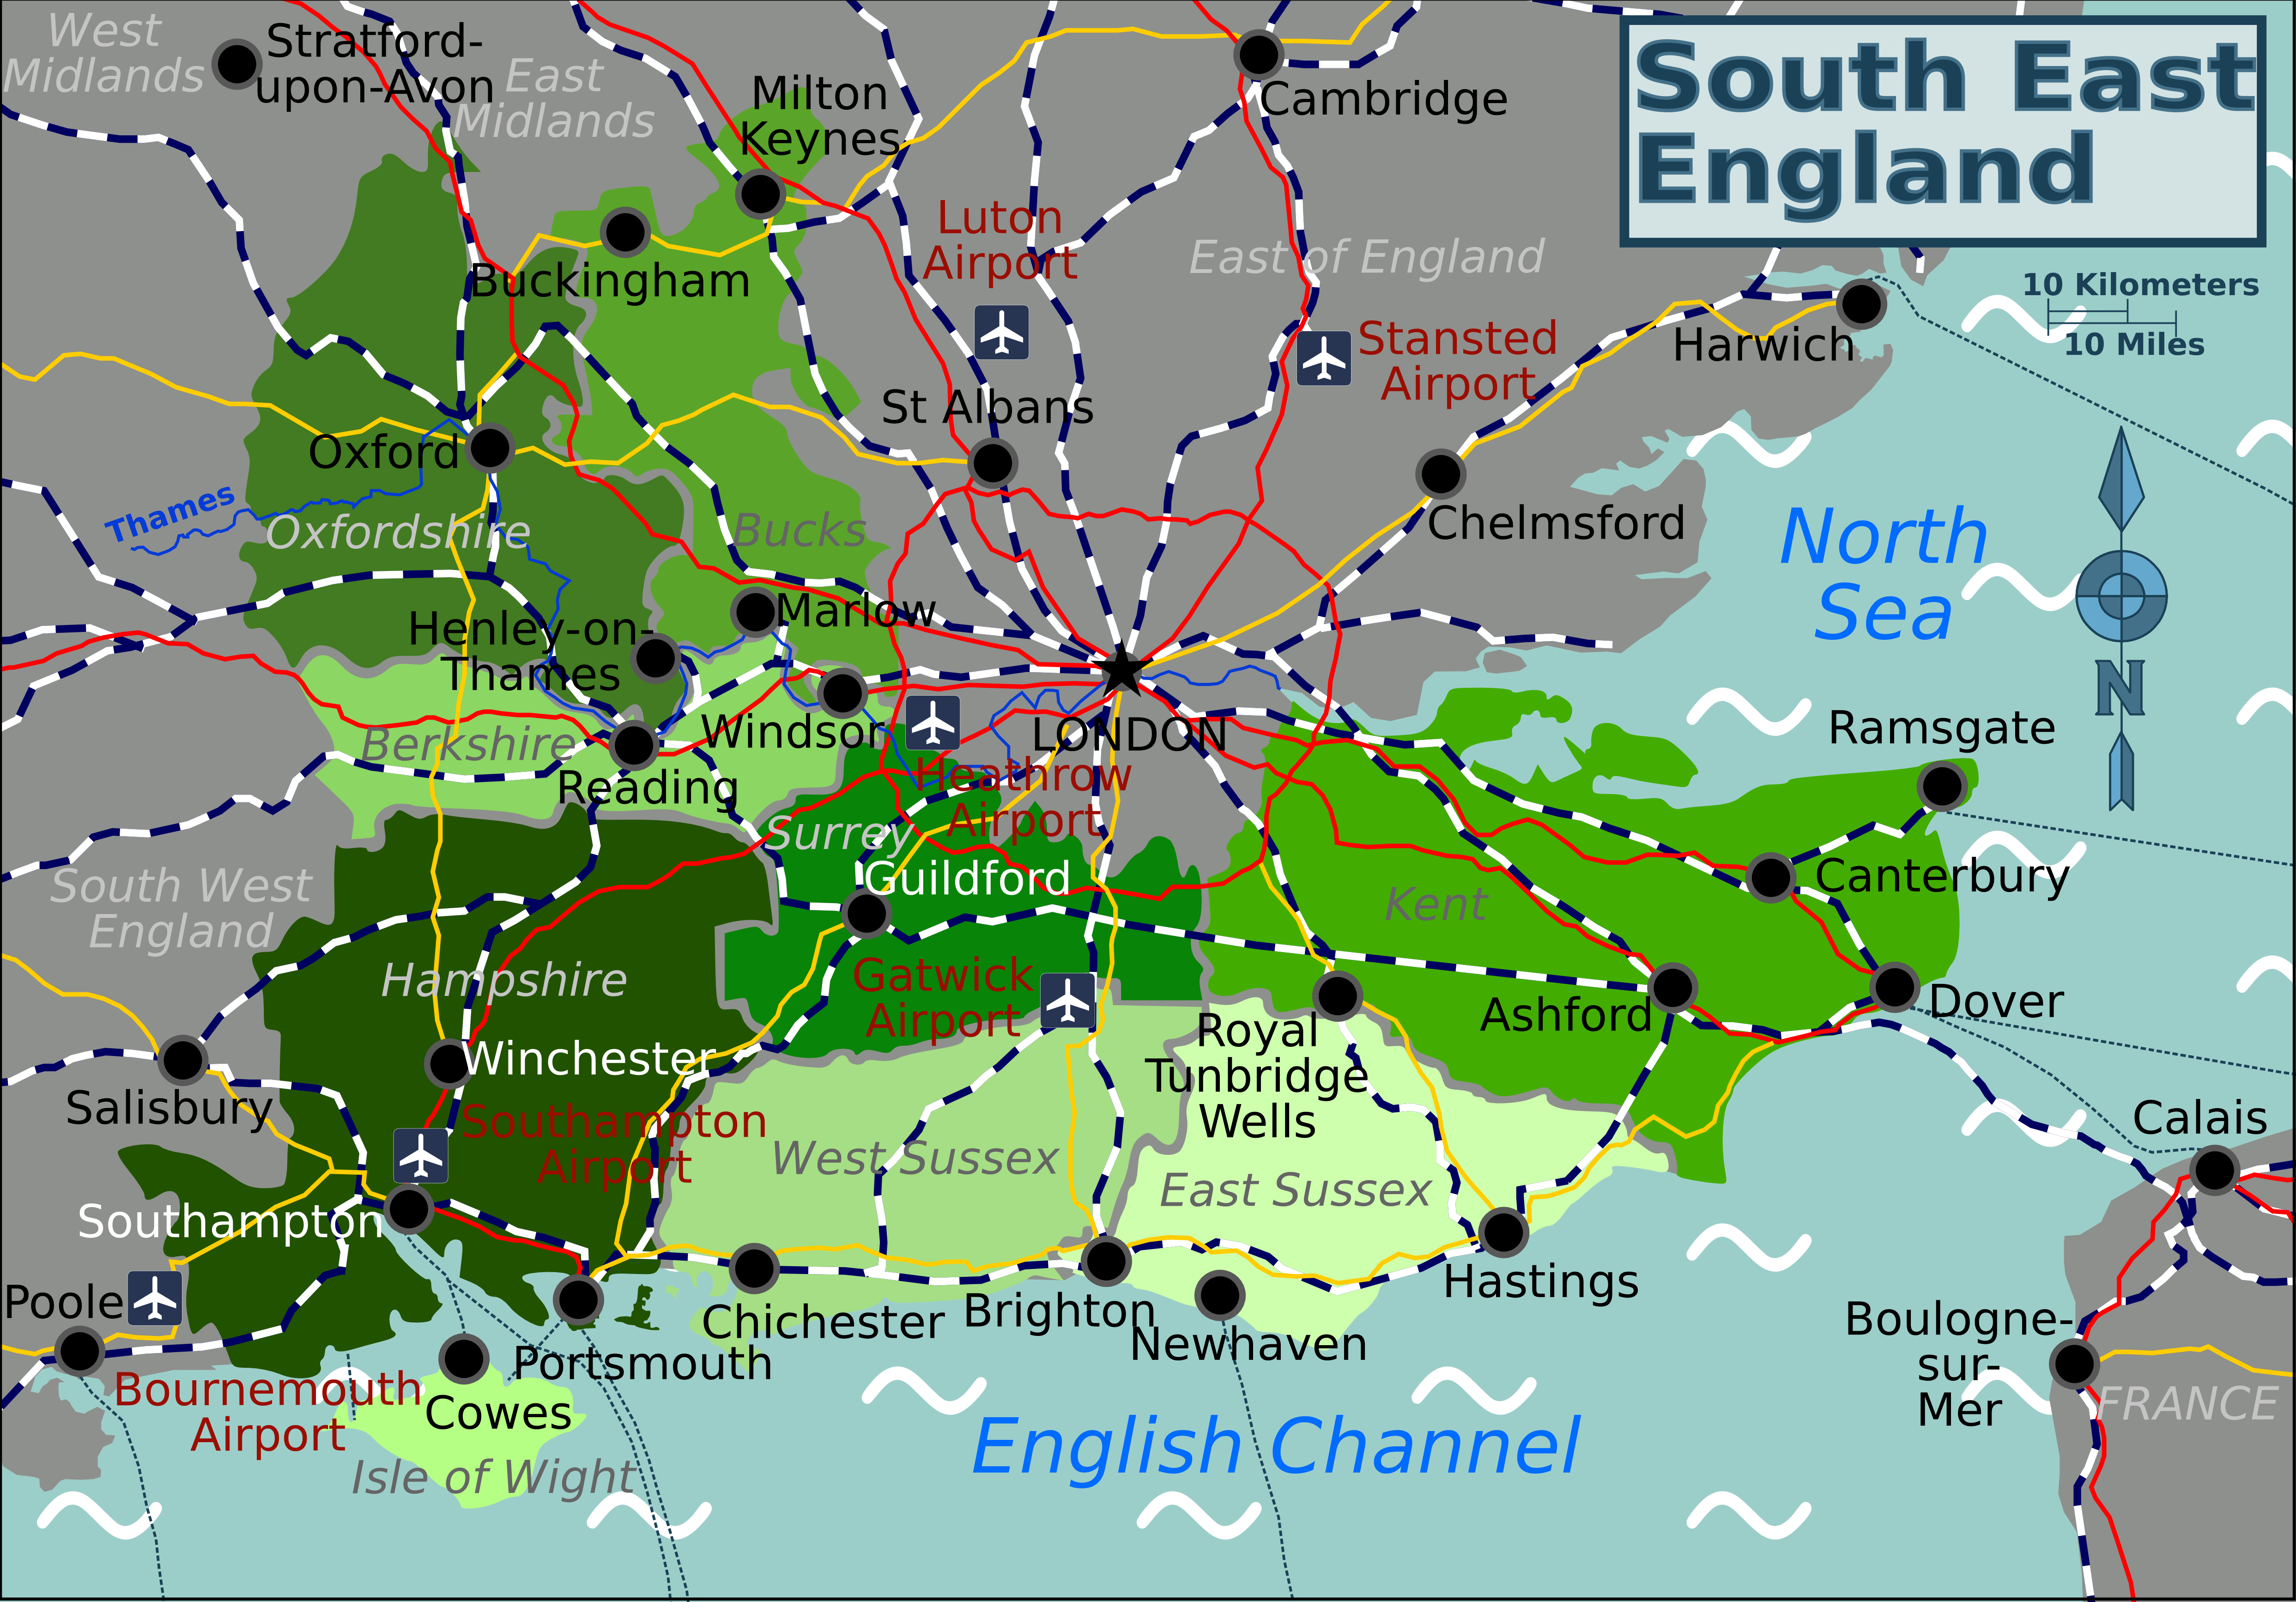 Se England Map.File South East England Map Png Wikimedia Commons